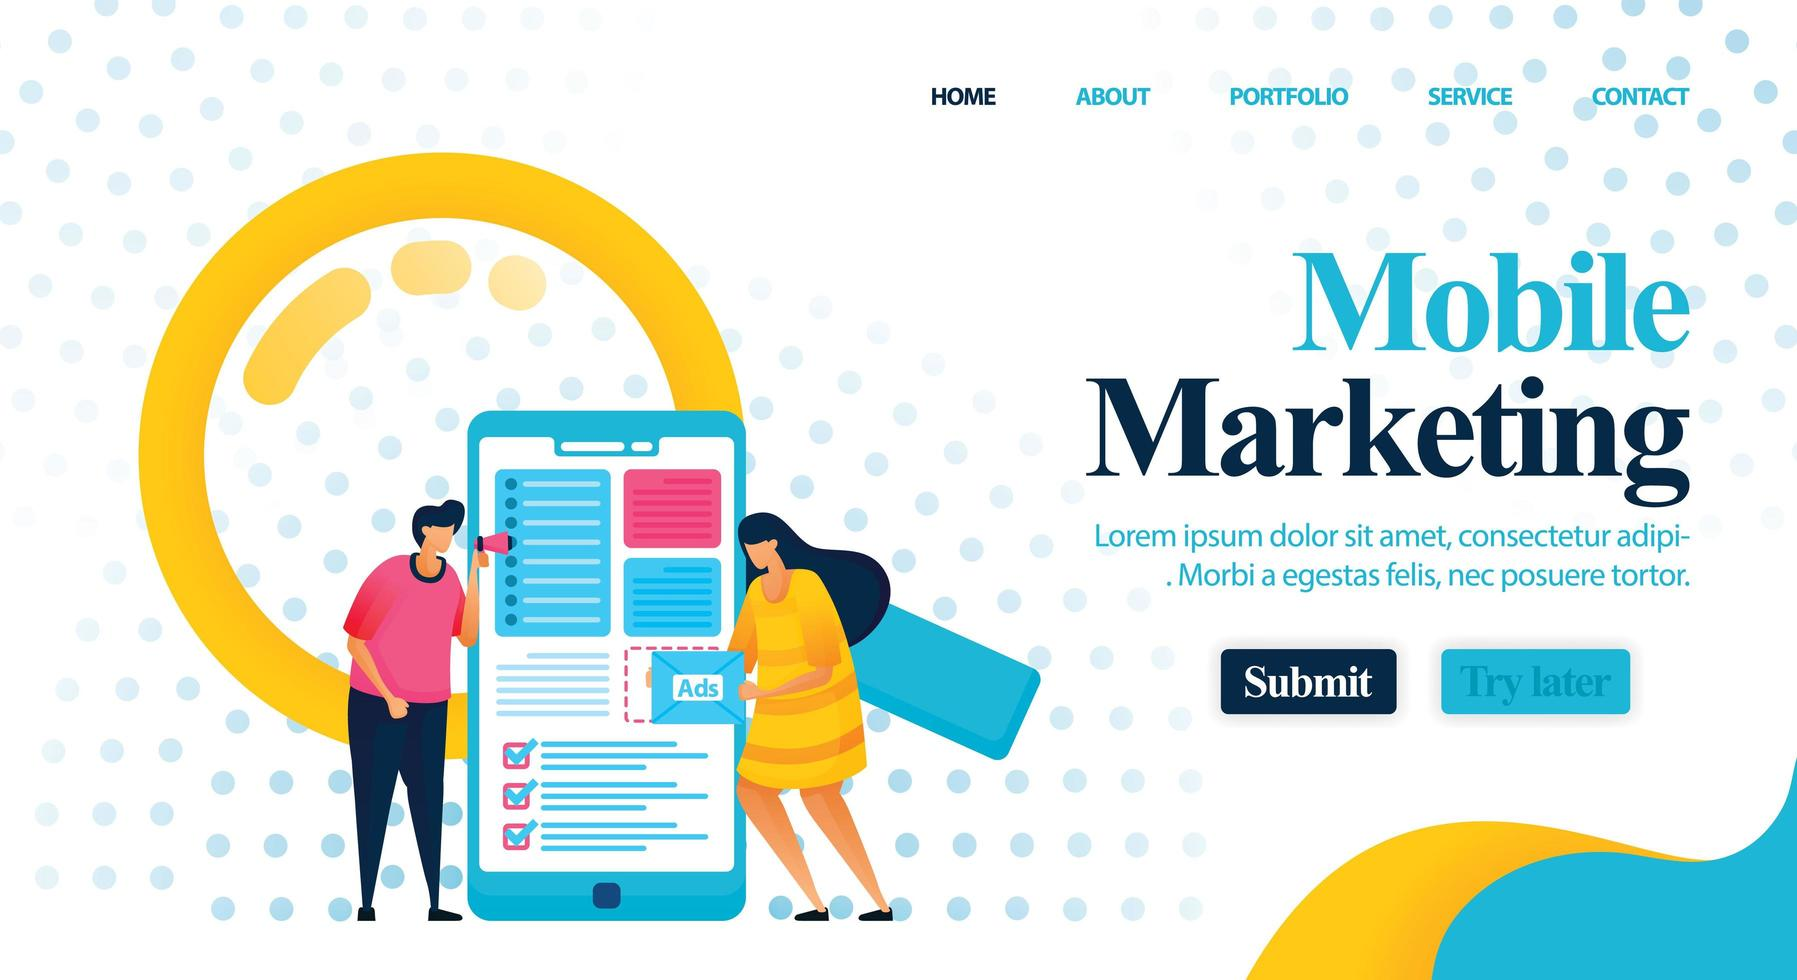 Optimization of ad costs and layout using mobile marketing to get profit. consulting for promotion and marketing to find better keywords. Vector Illustration For Web, Landing Page, Banner, Mobile Apps